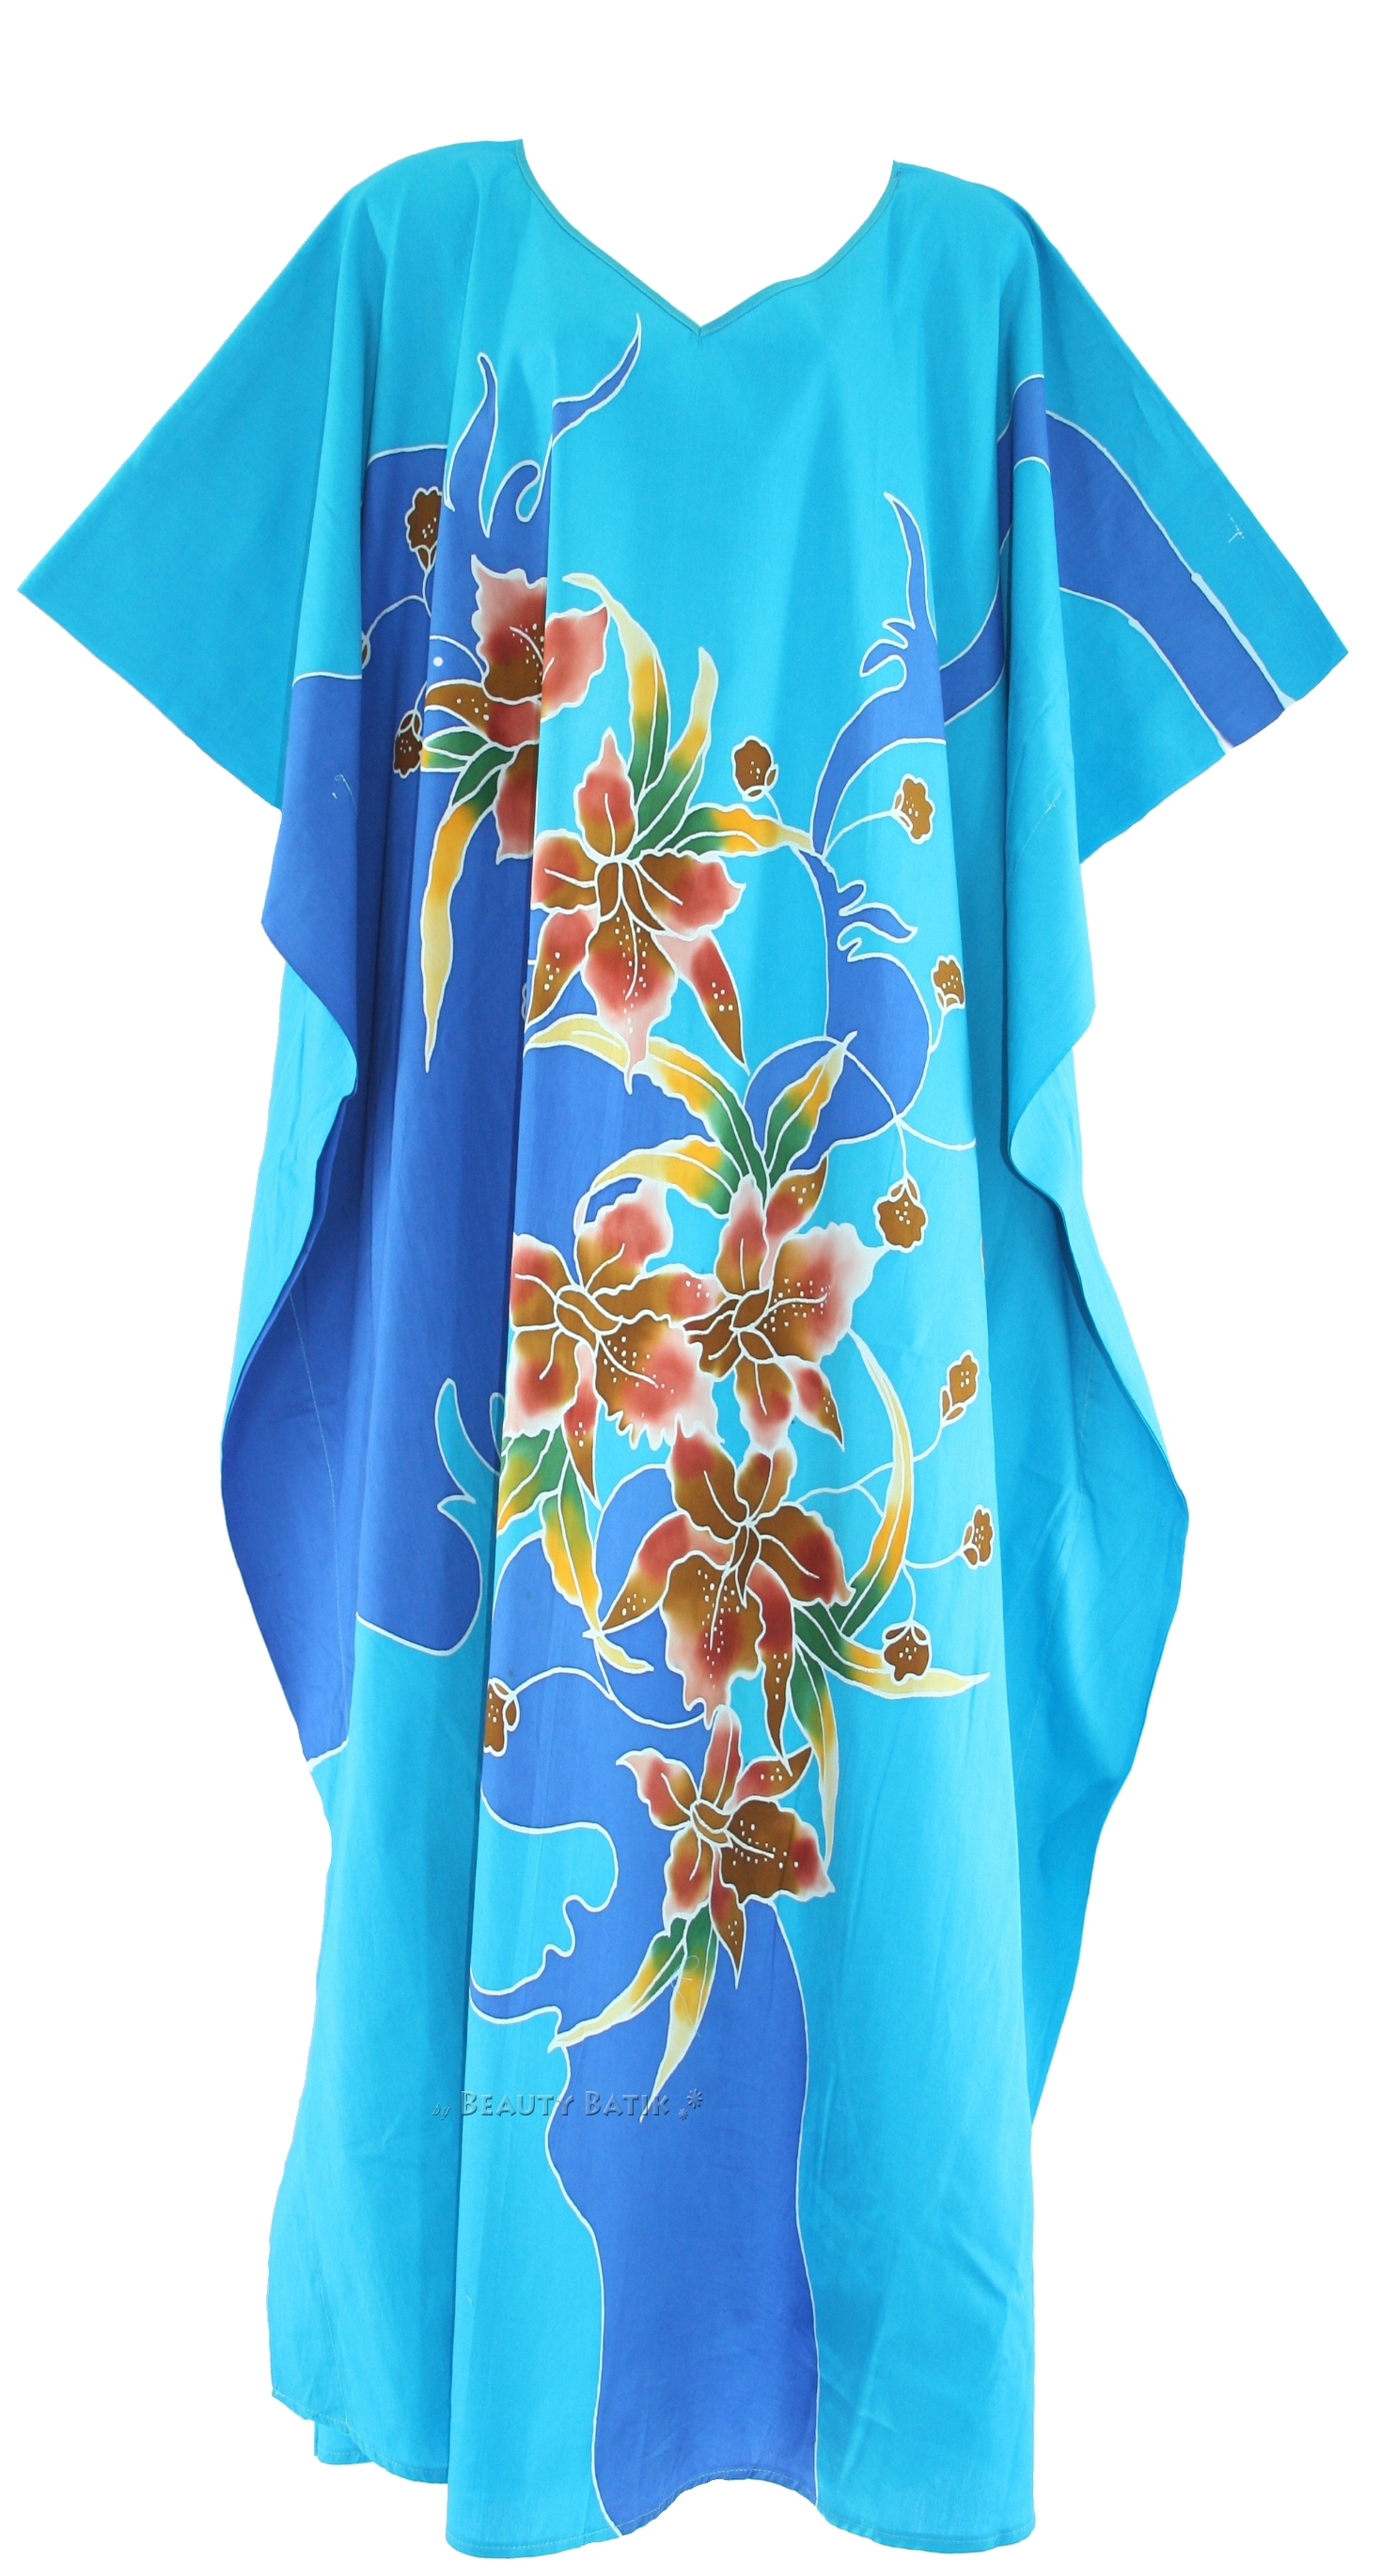 Blue Batik Cotton Caftan Kaftan Loungewear Dress Plus Sz